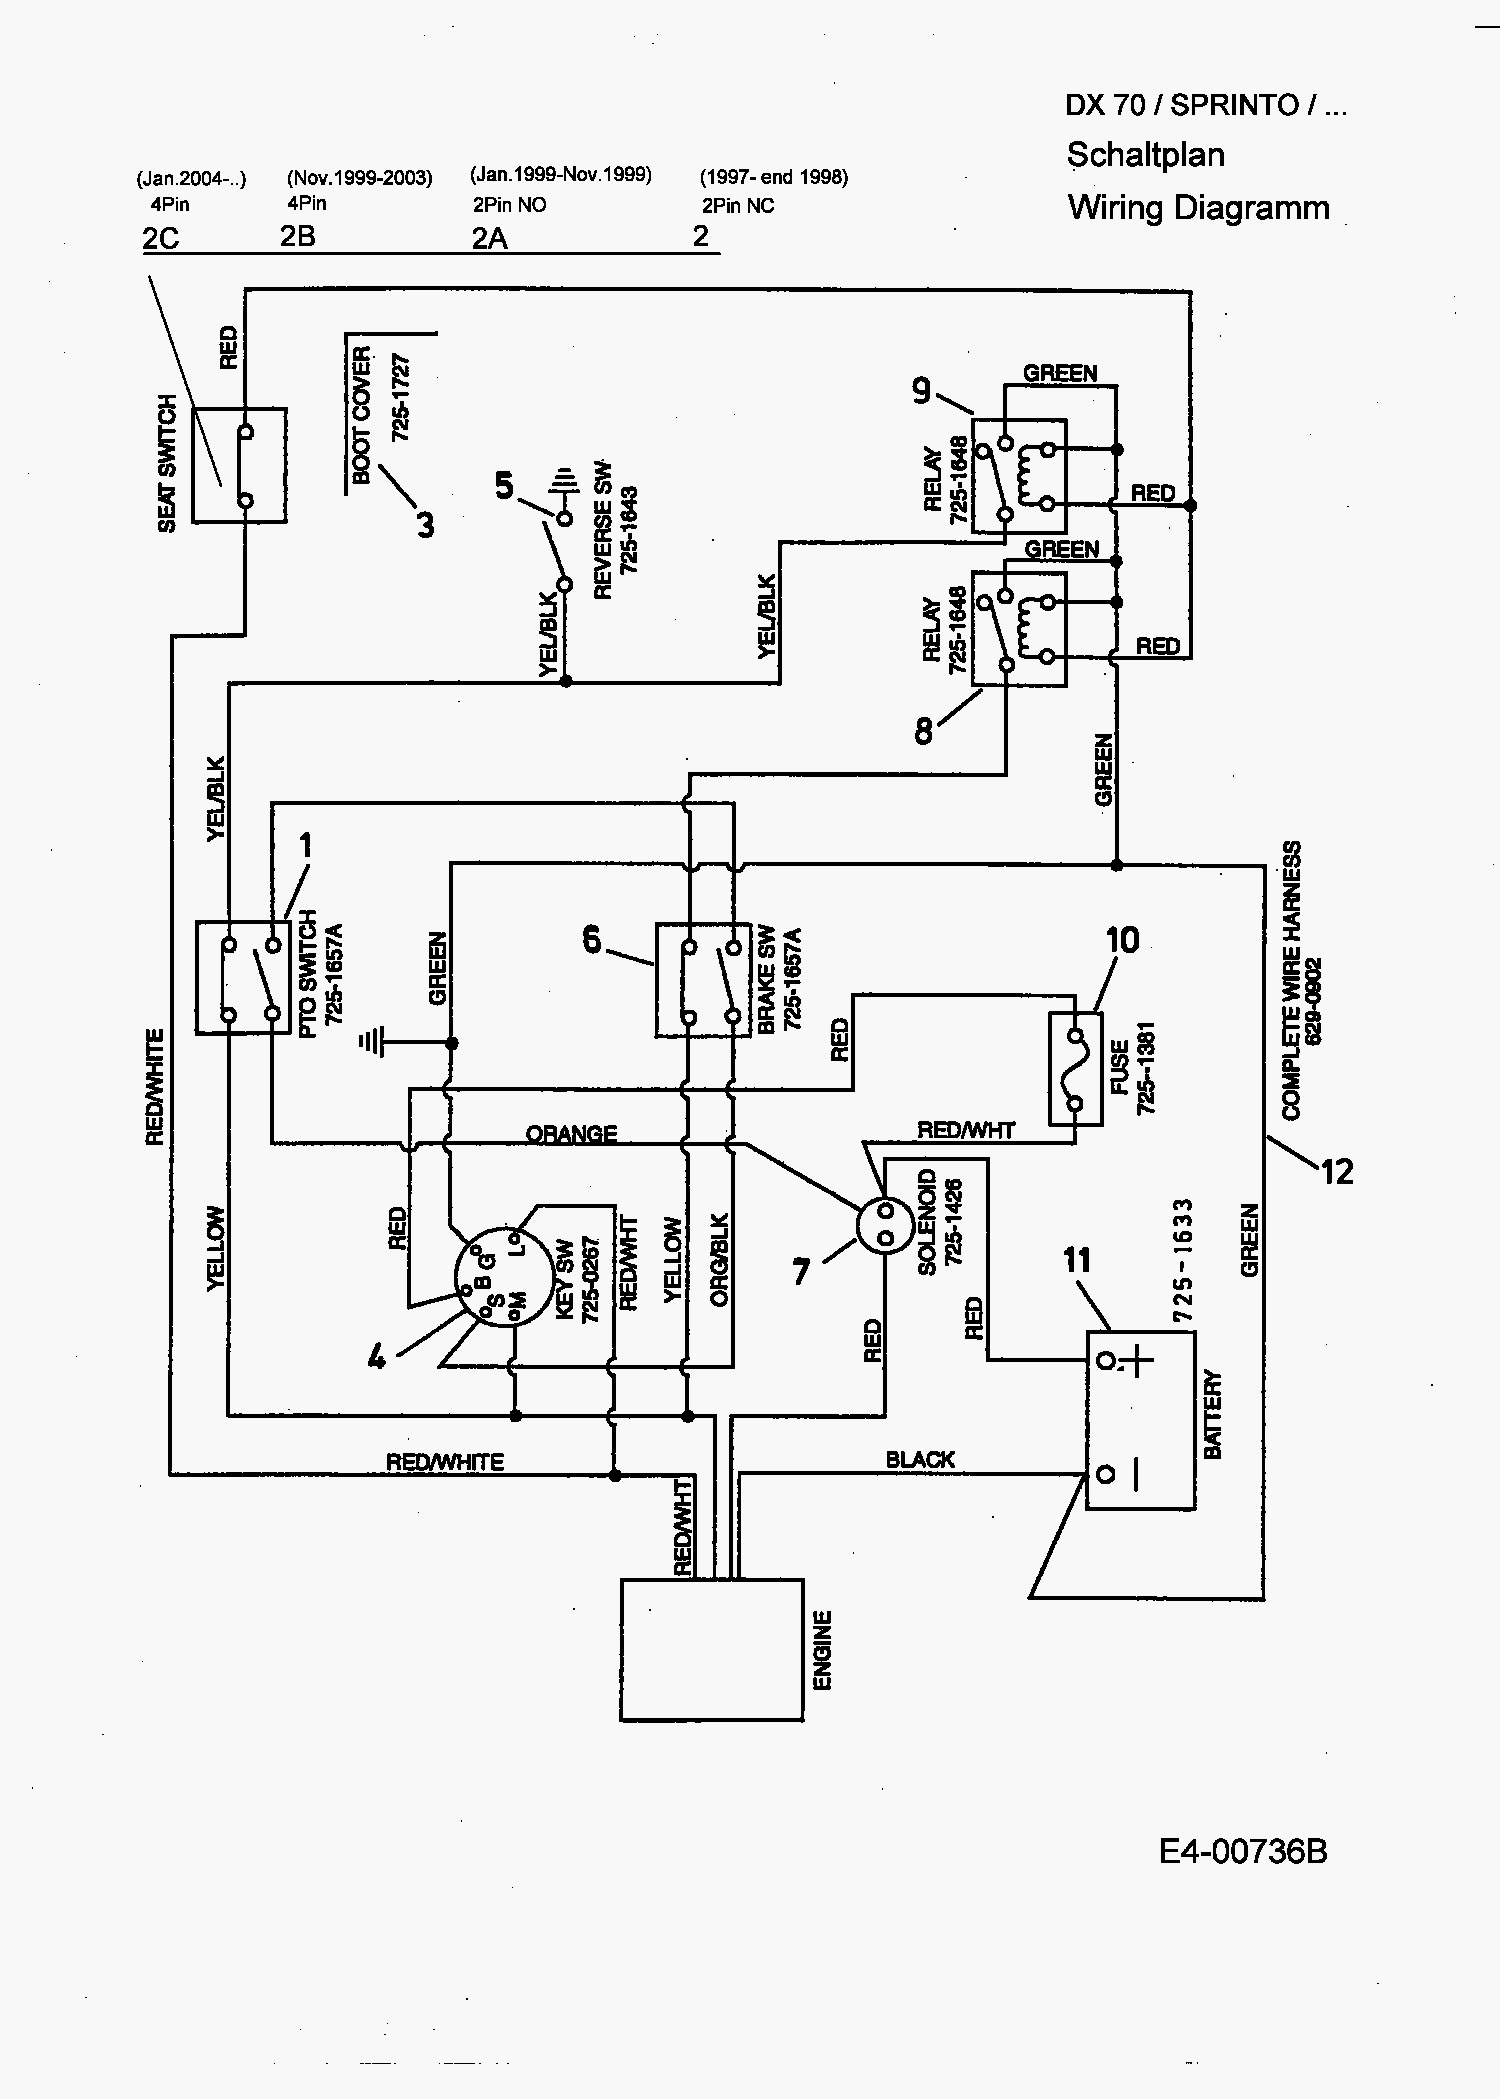 mtd wire diagram mtd wiring diagram images mtd lawnflite wiring mtd wiring diagram images diagram moreover mtd yard machine wiring diagram together wright